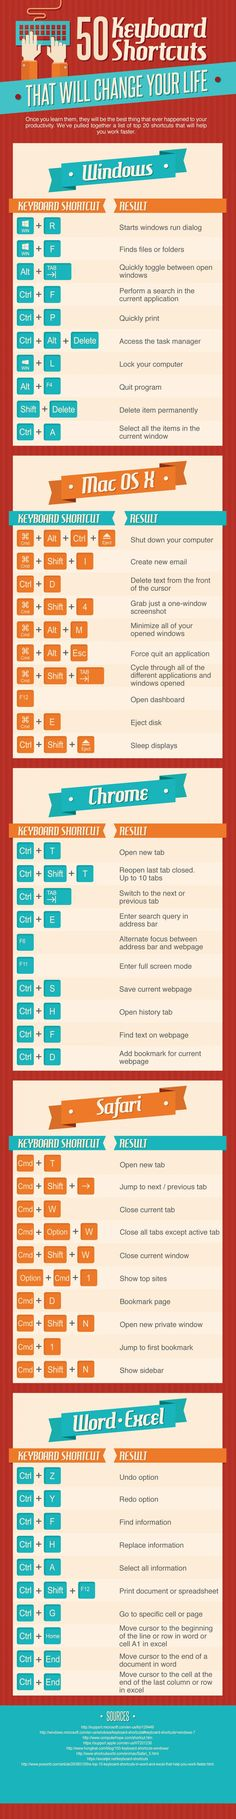 50 Keyboard Shortcuts You Absolutely Need To Know, Because Your Life Will Be So Much Better With Them — INFOGRAPHIC | Bustle